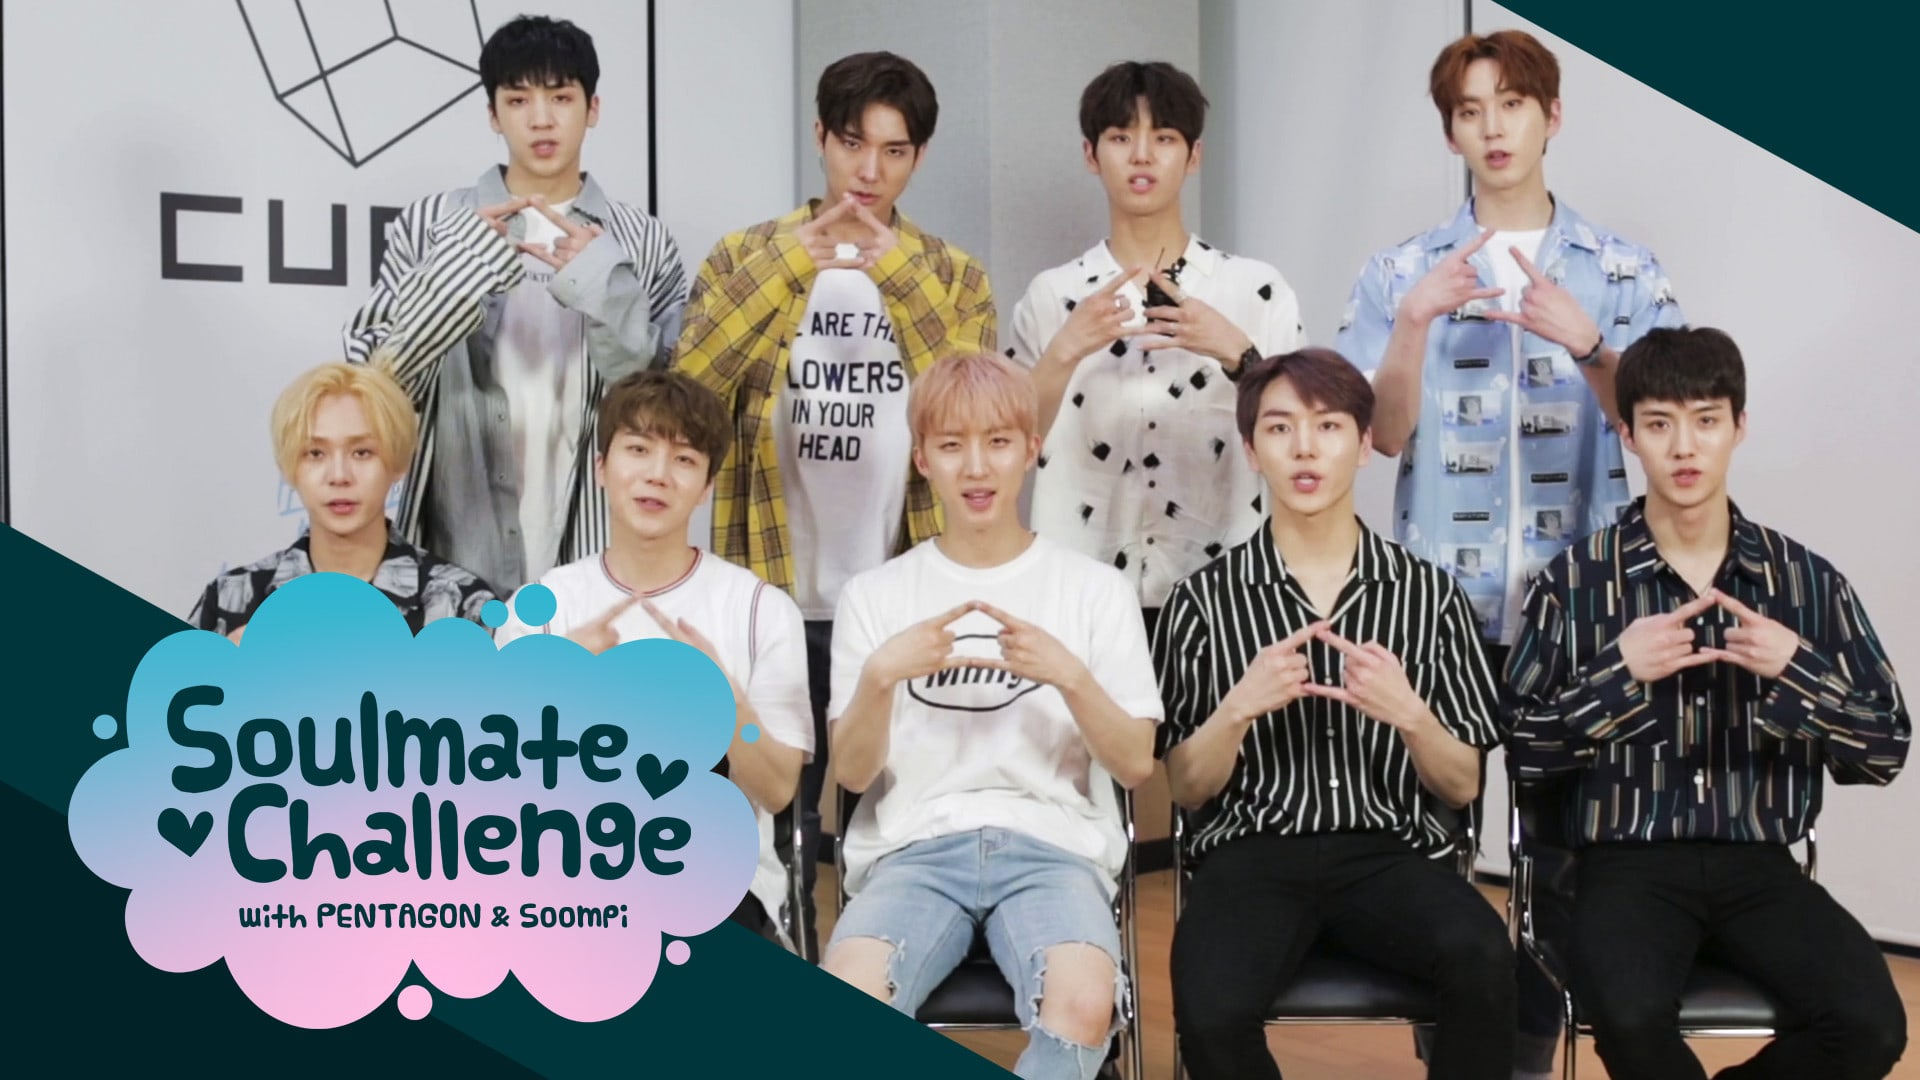 QUIZ: PENTAGON Takes On The Soulmate Challenge – Who Is Meant For You?